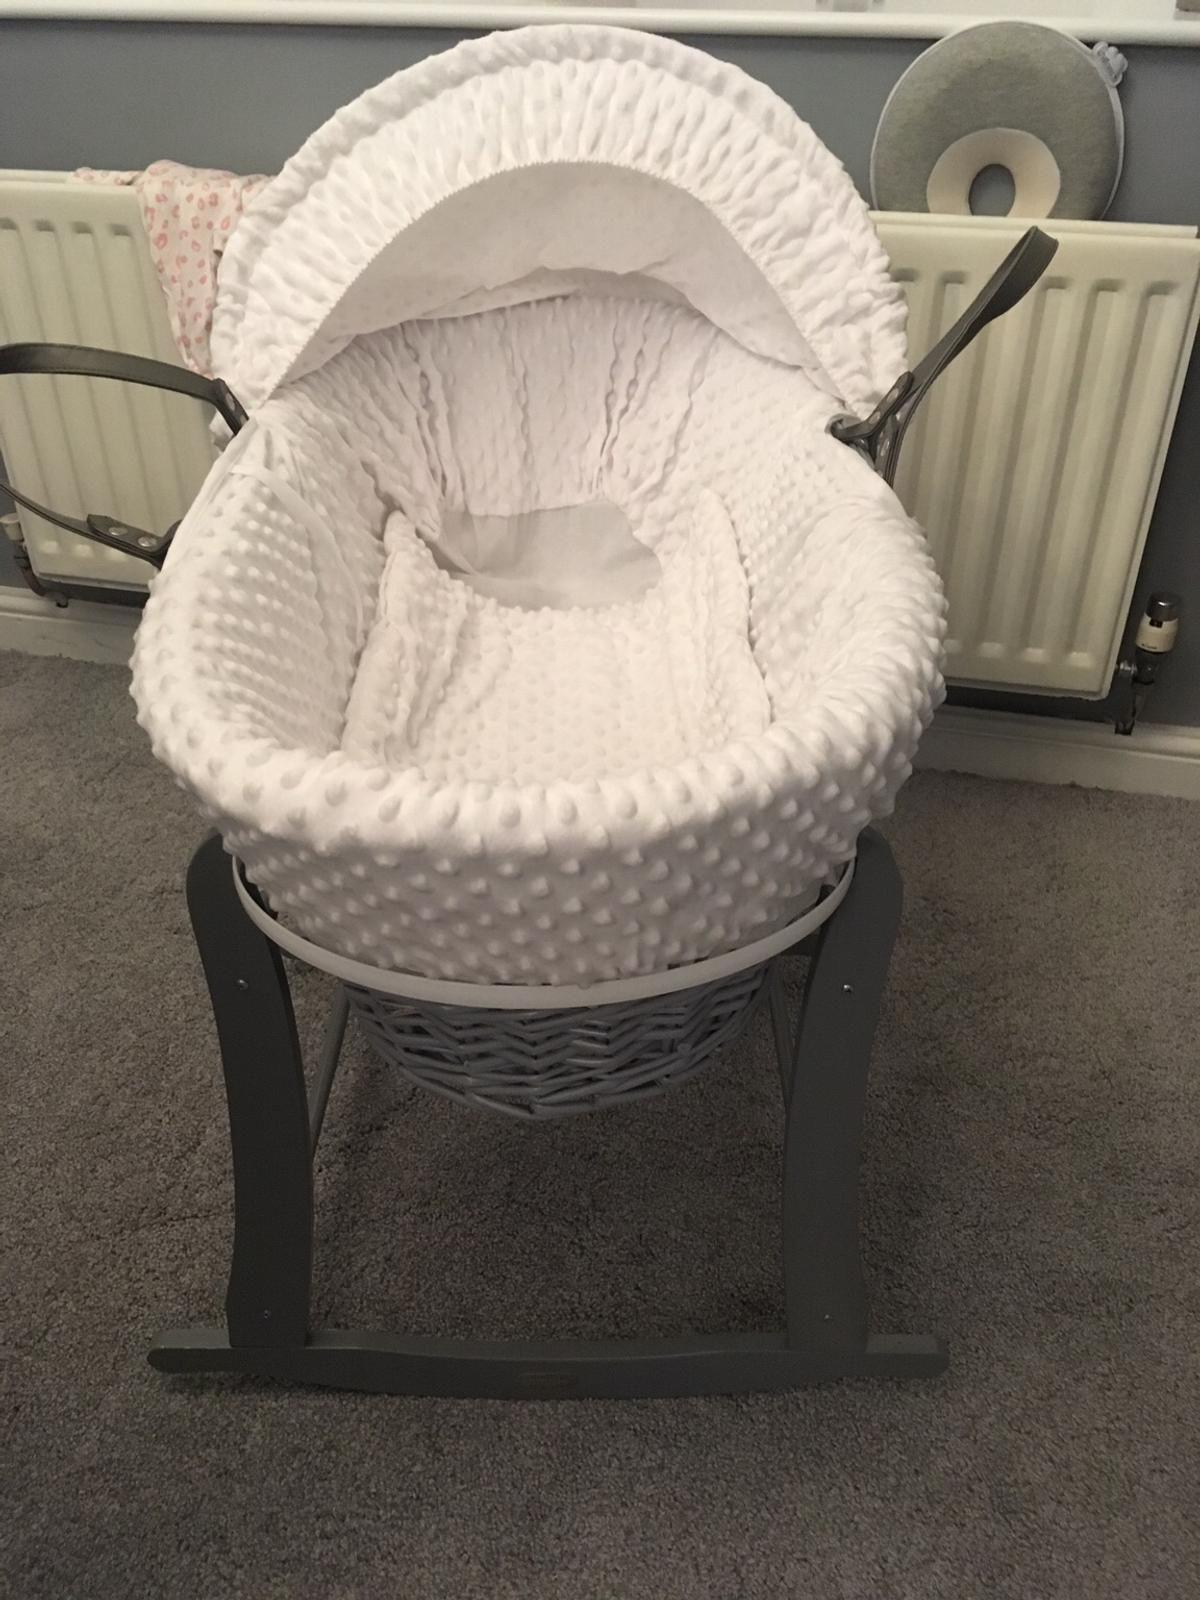 Clair de lune Moses basket with puggle stand. NO Mattress but it's recommended to always use a new one. Good condition a few little scratches on the stand from moving around.